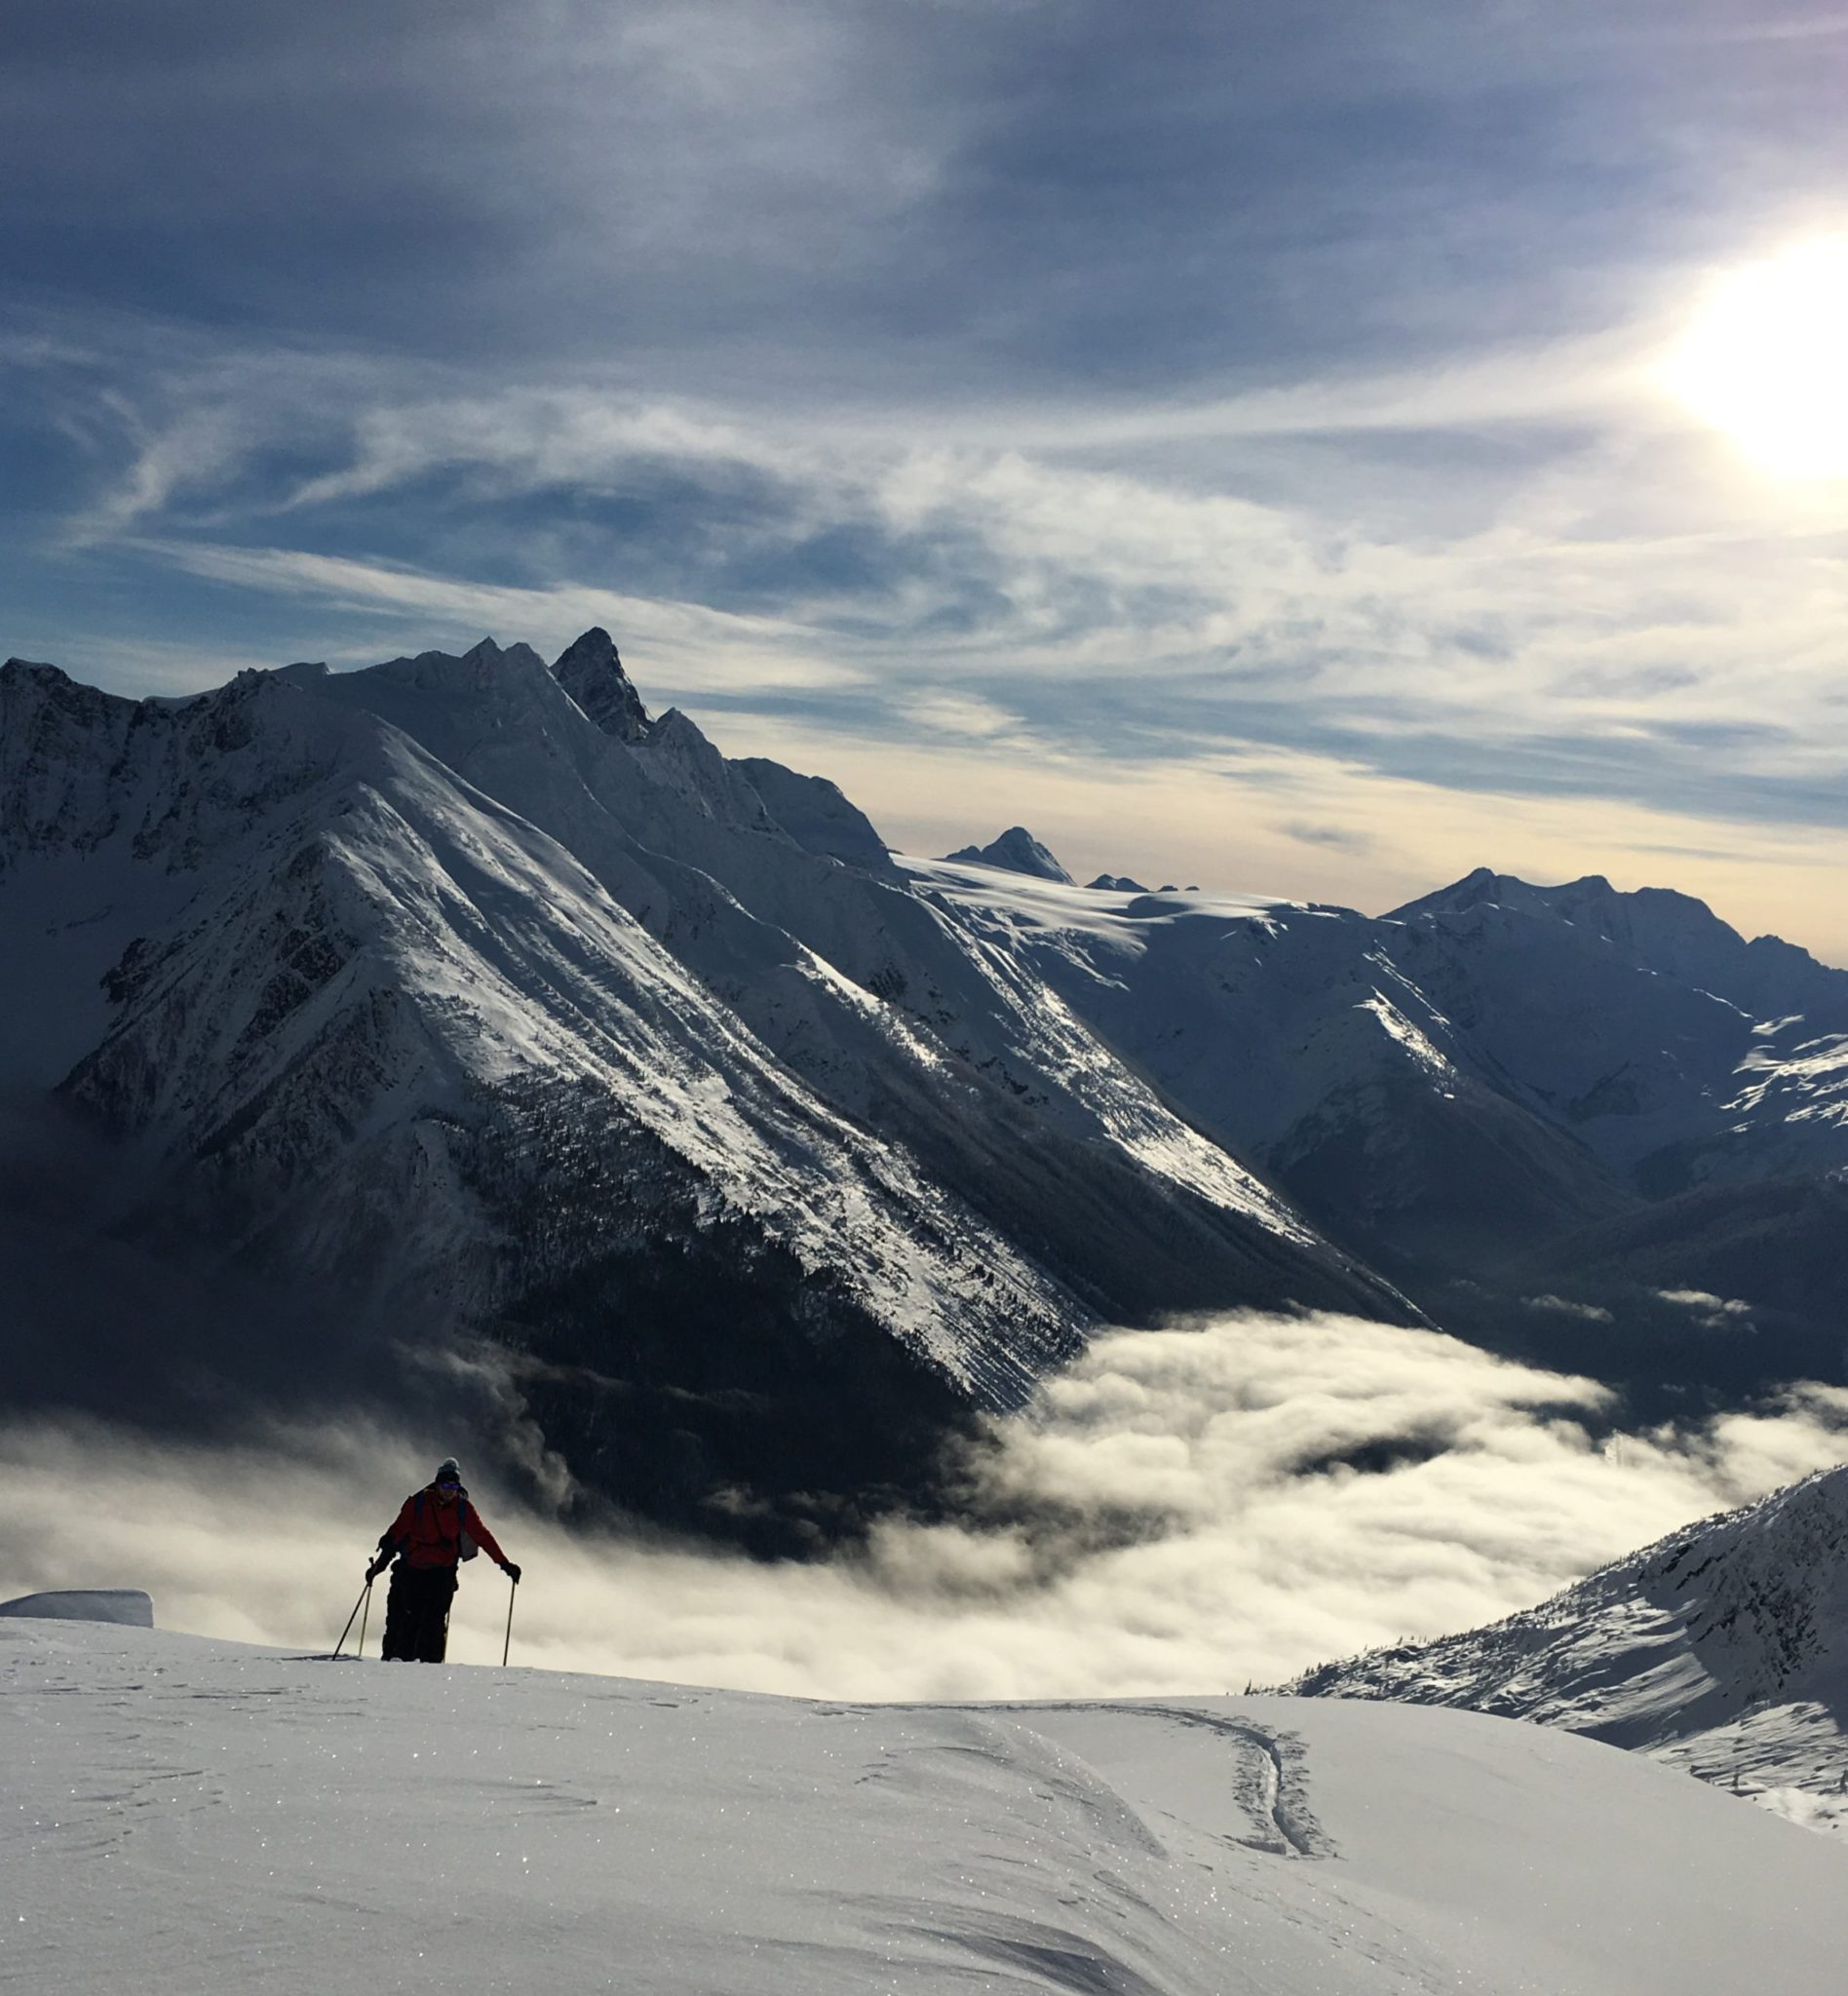 Canada ski touring: Freeride skiing holiday in British Columbia